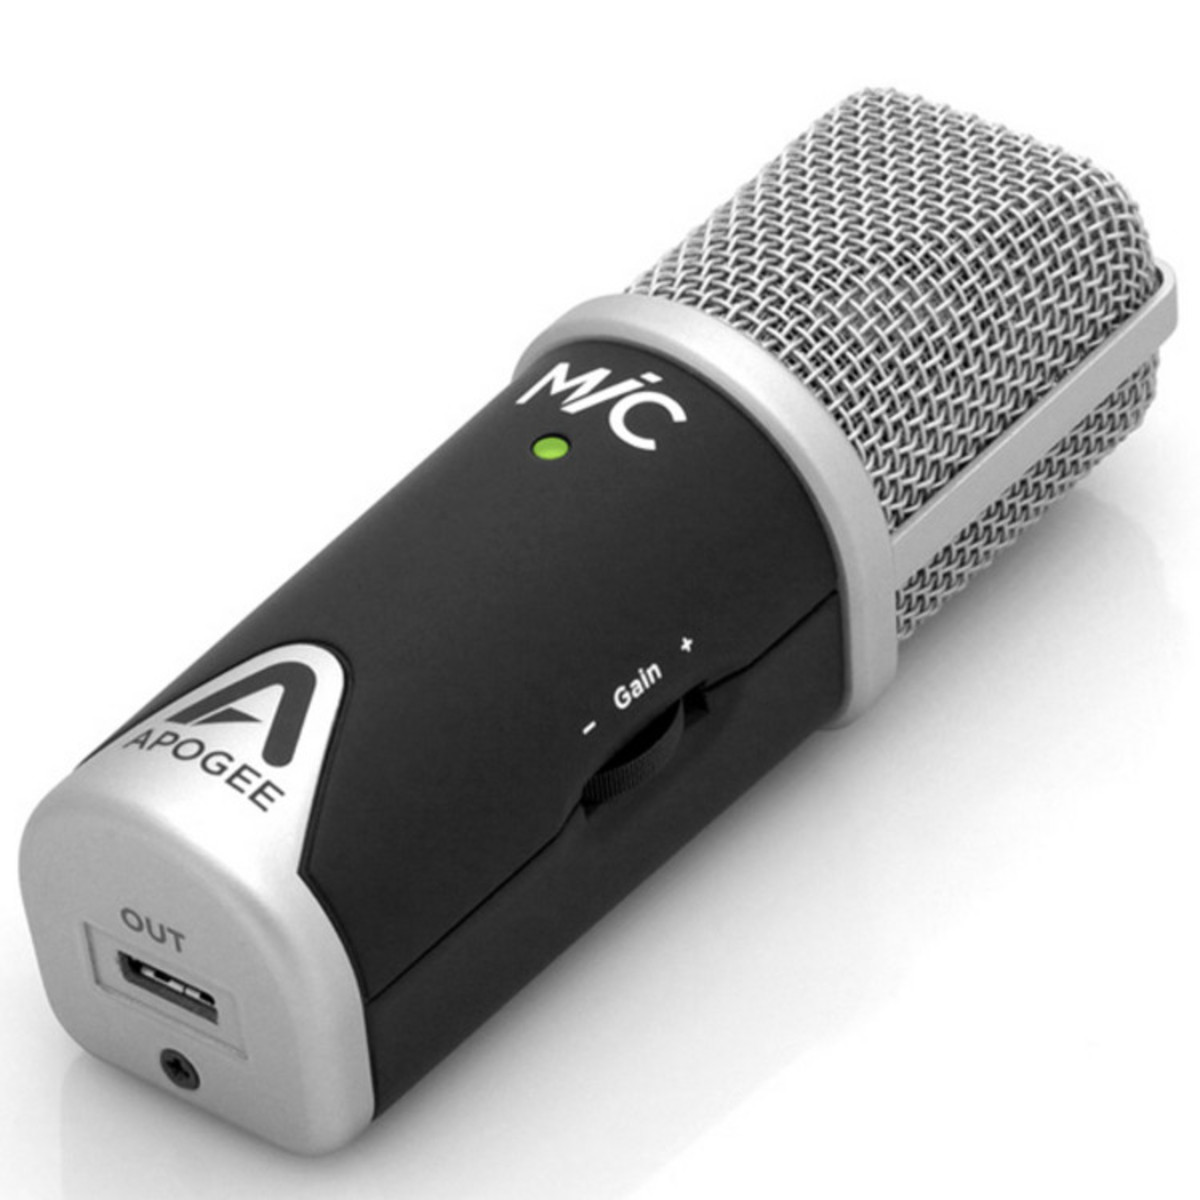 Apogee Mic 96k Usb Microphone For Ipad Iphone And Mac At